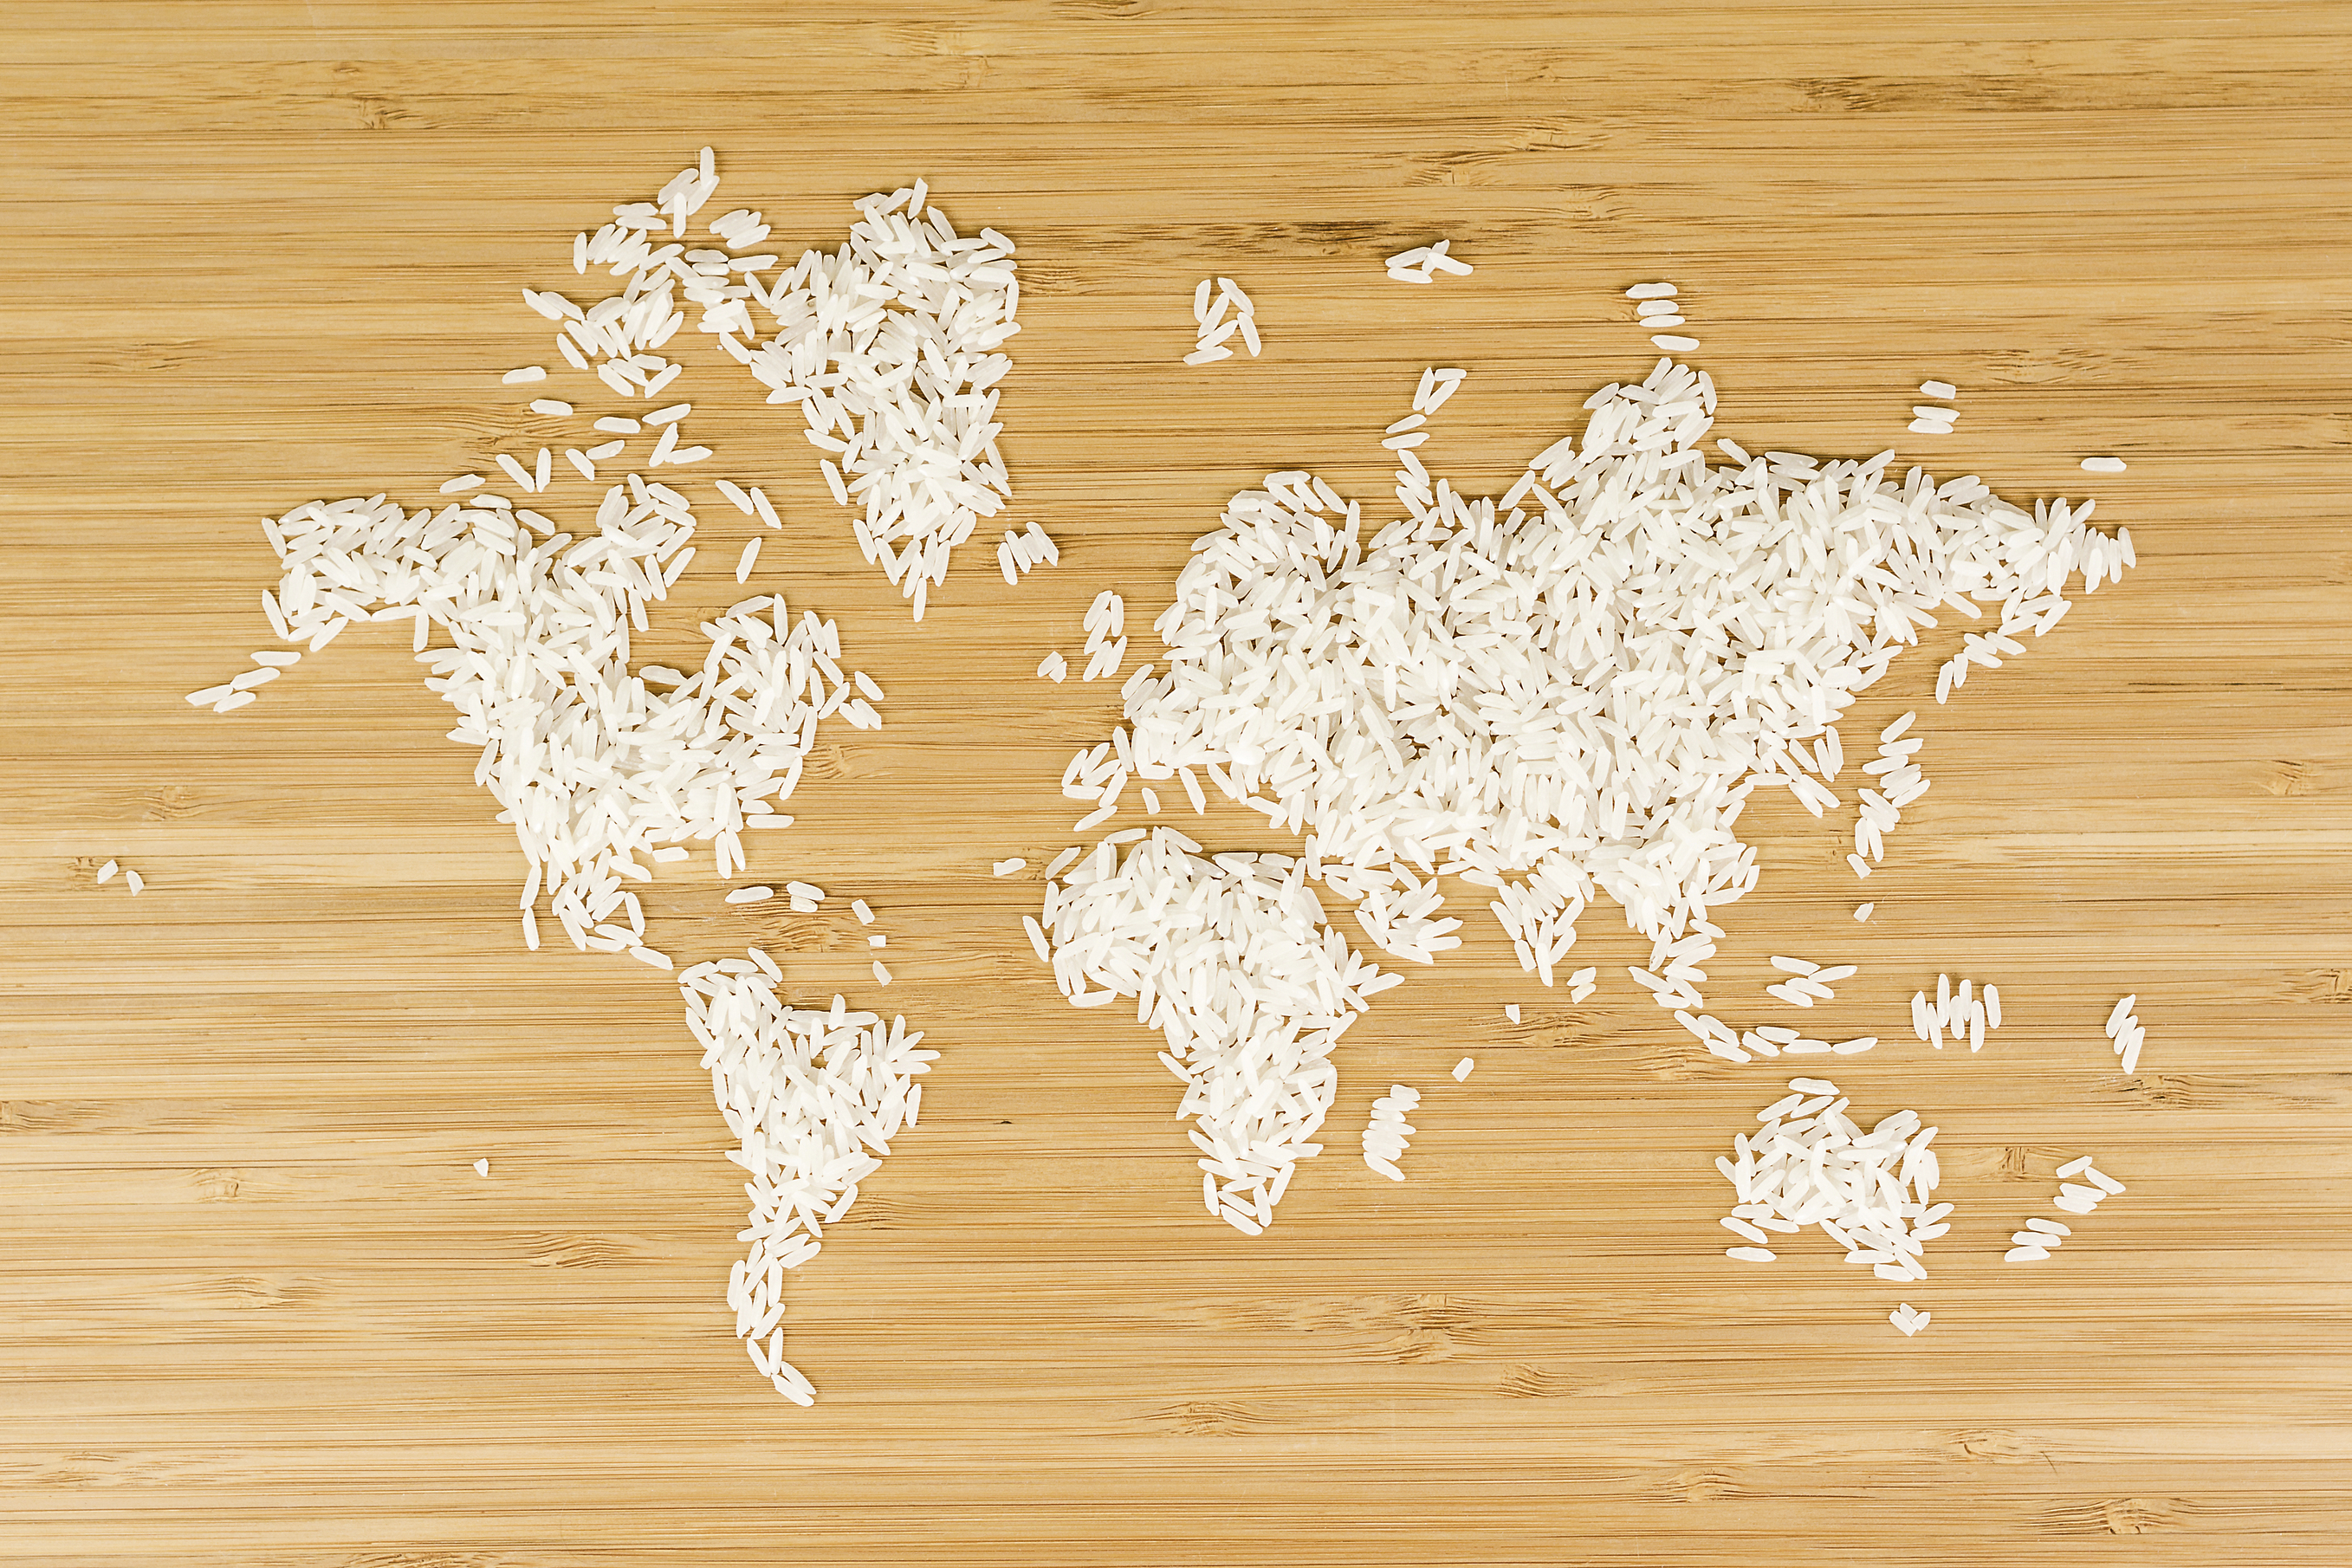 map of the world made of white rice 000079002509 Large 1